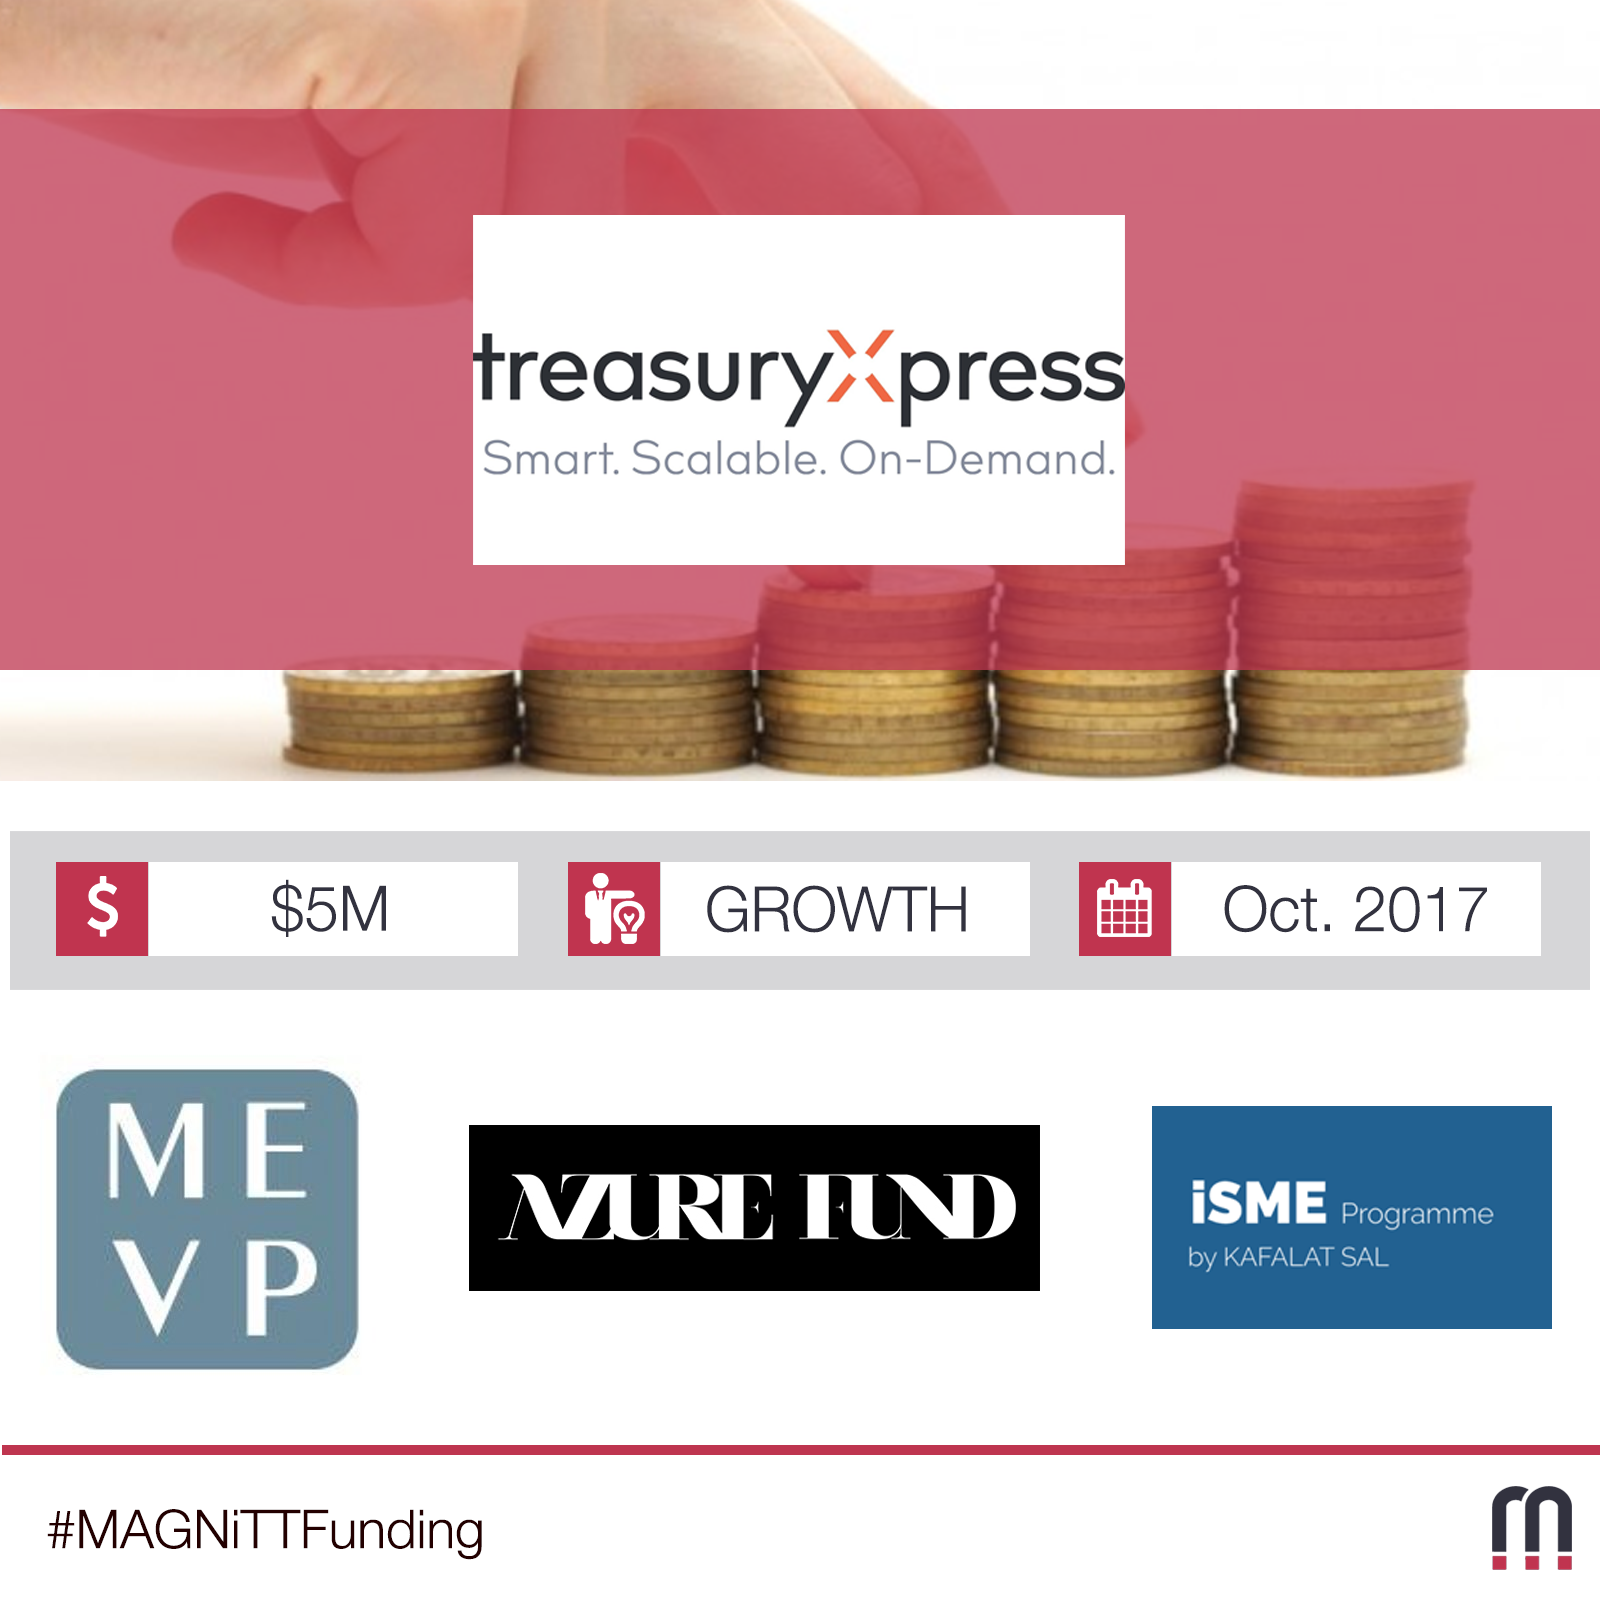 TreasuryXpress Receives Major Growth Investment